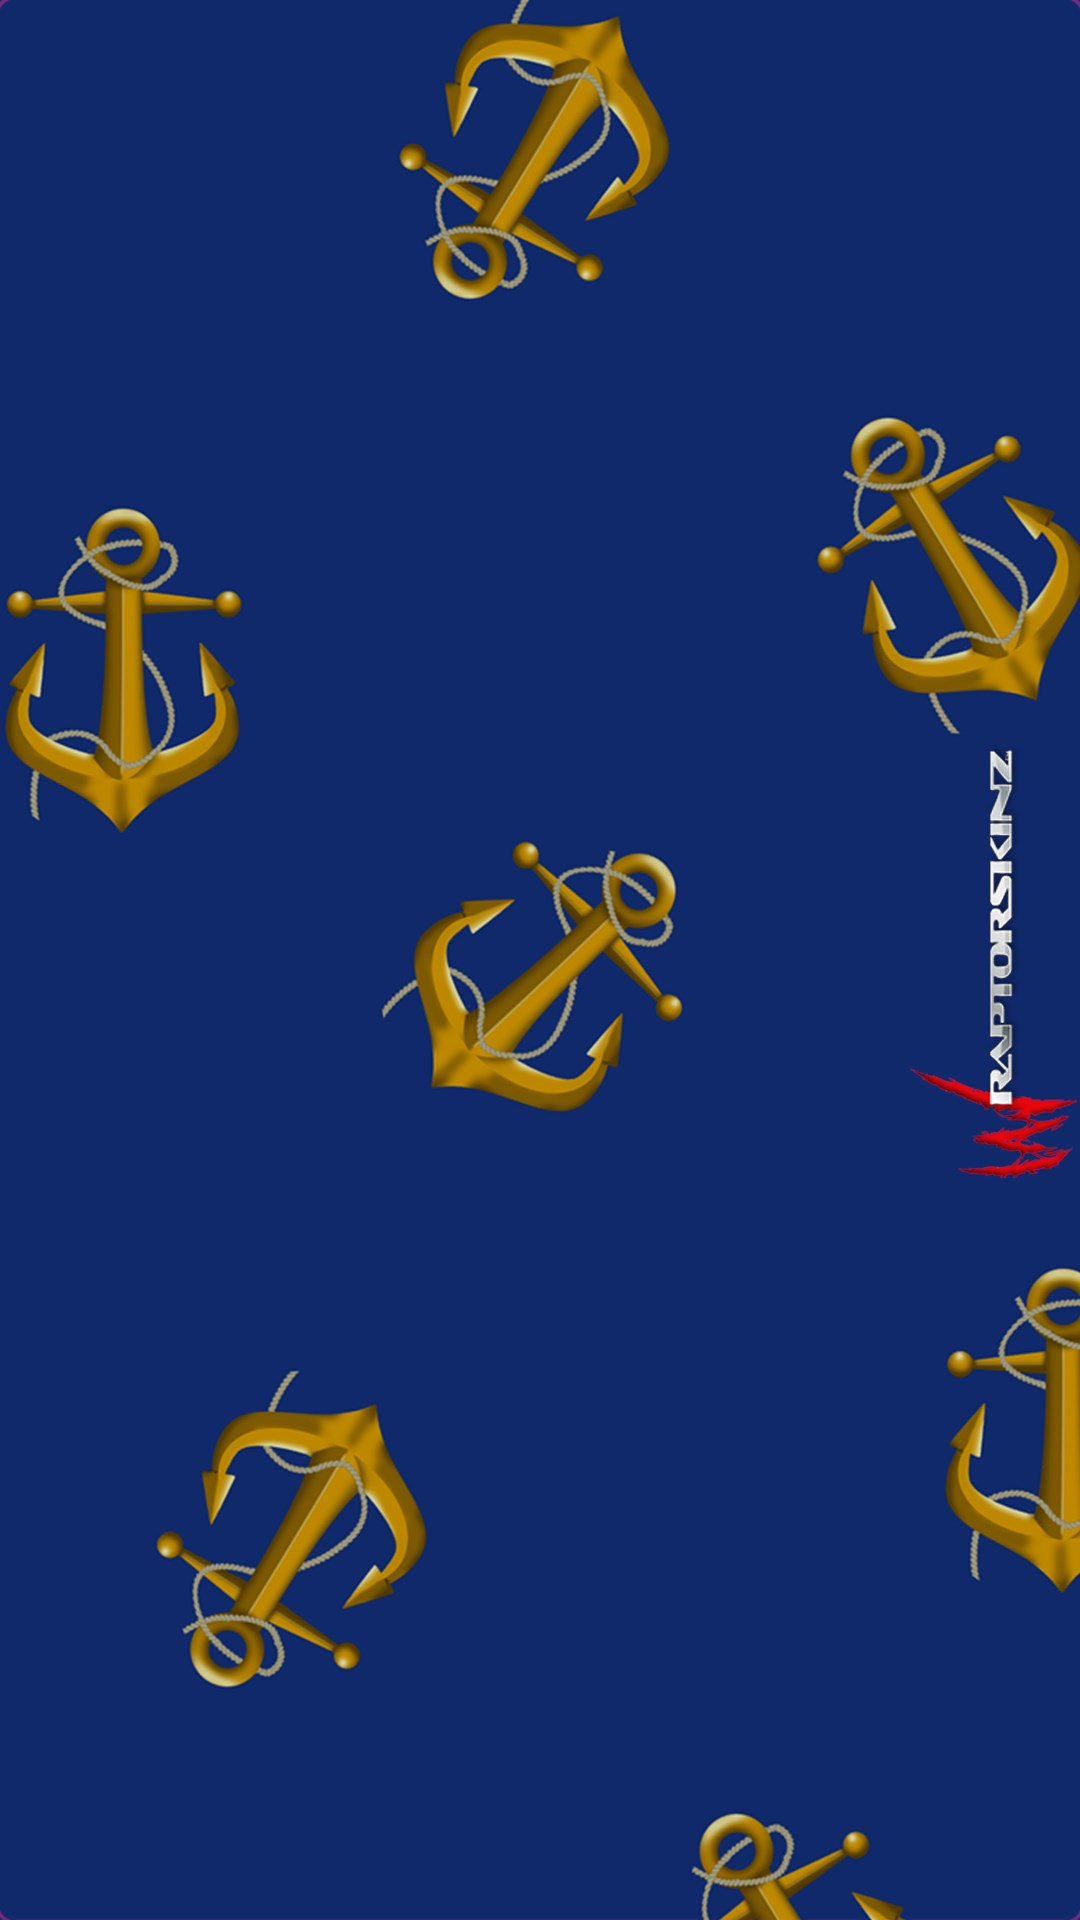 Anchors Away Blue   Decal Style Skin fits Samsung Galaxy S IV S4 1080x1920